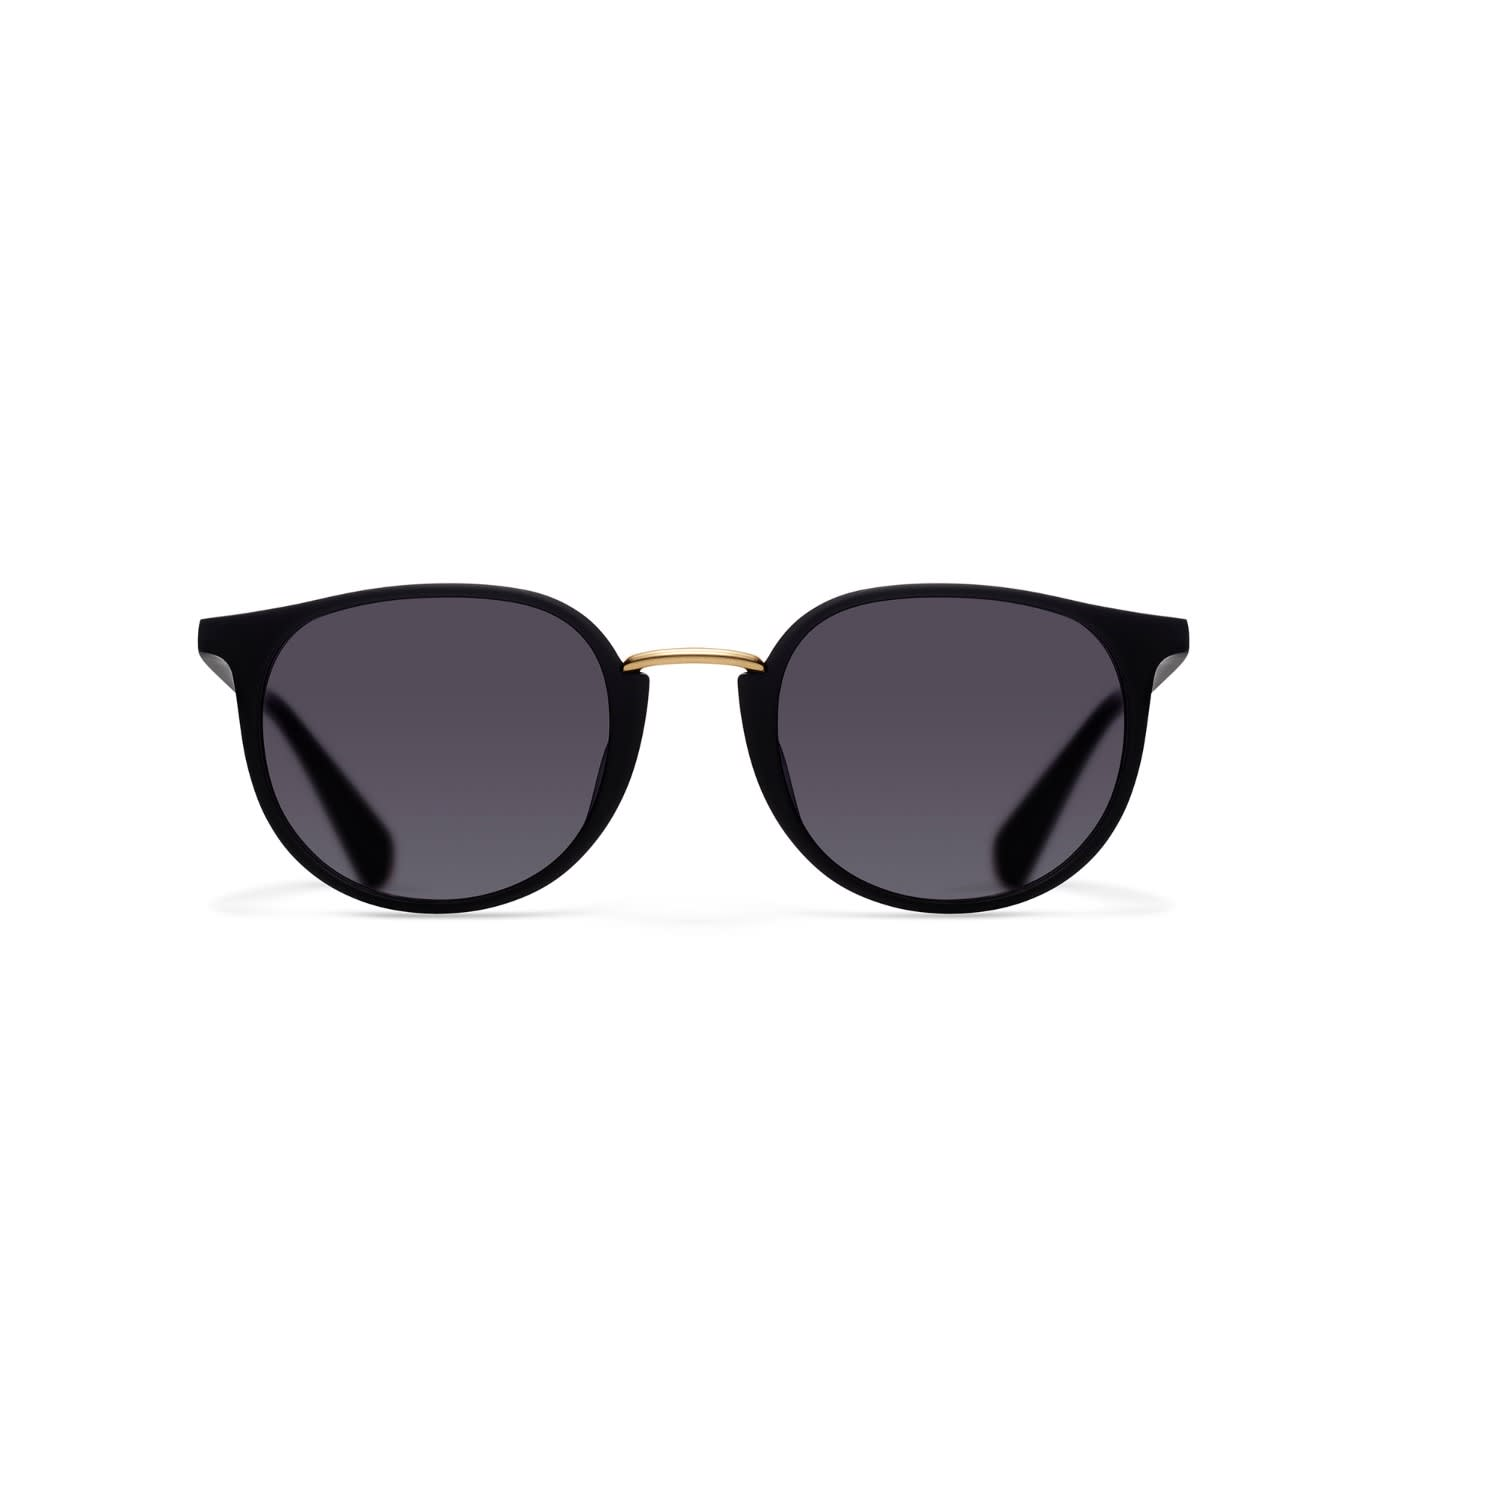 e61ee0b92b Harbour 'Catwalk' - Classic Round Sunglasses in Black by NOTINLOVE